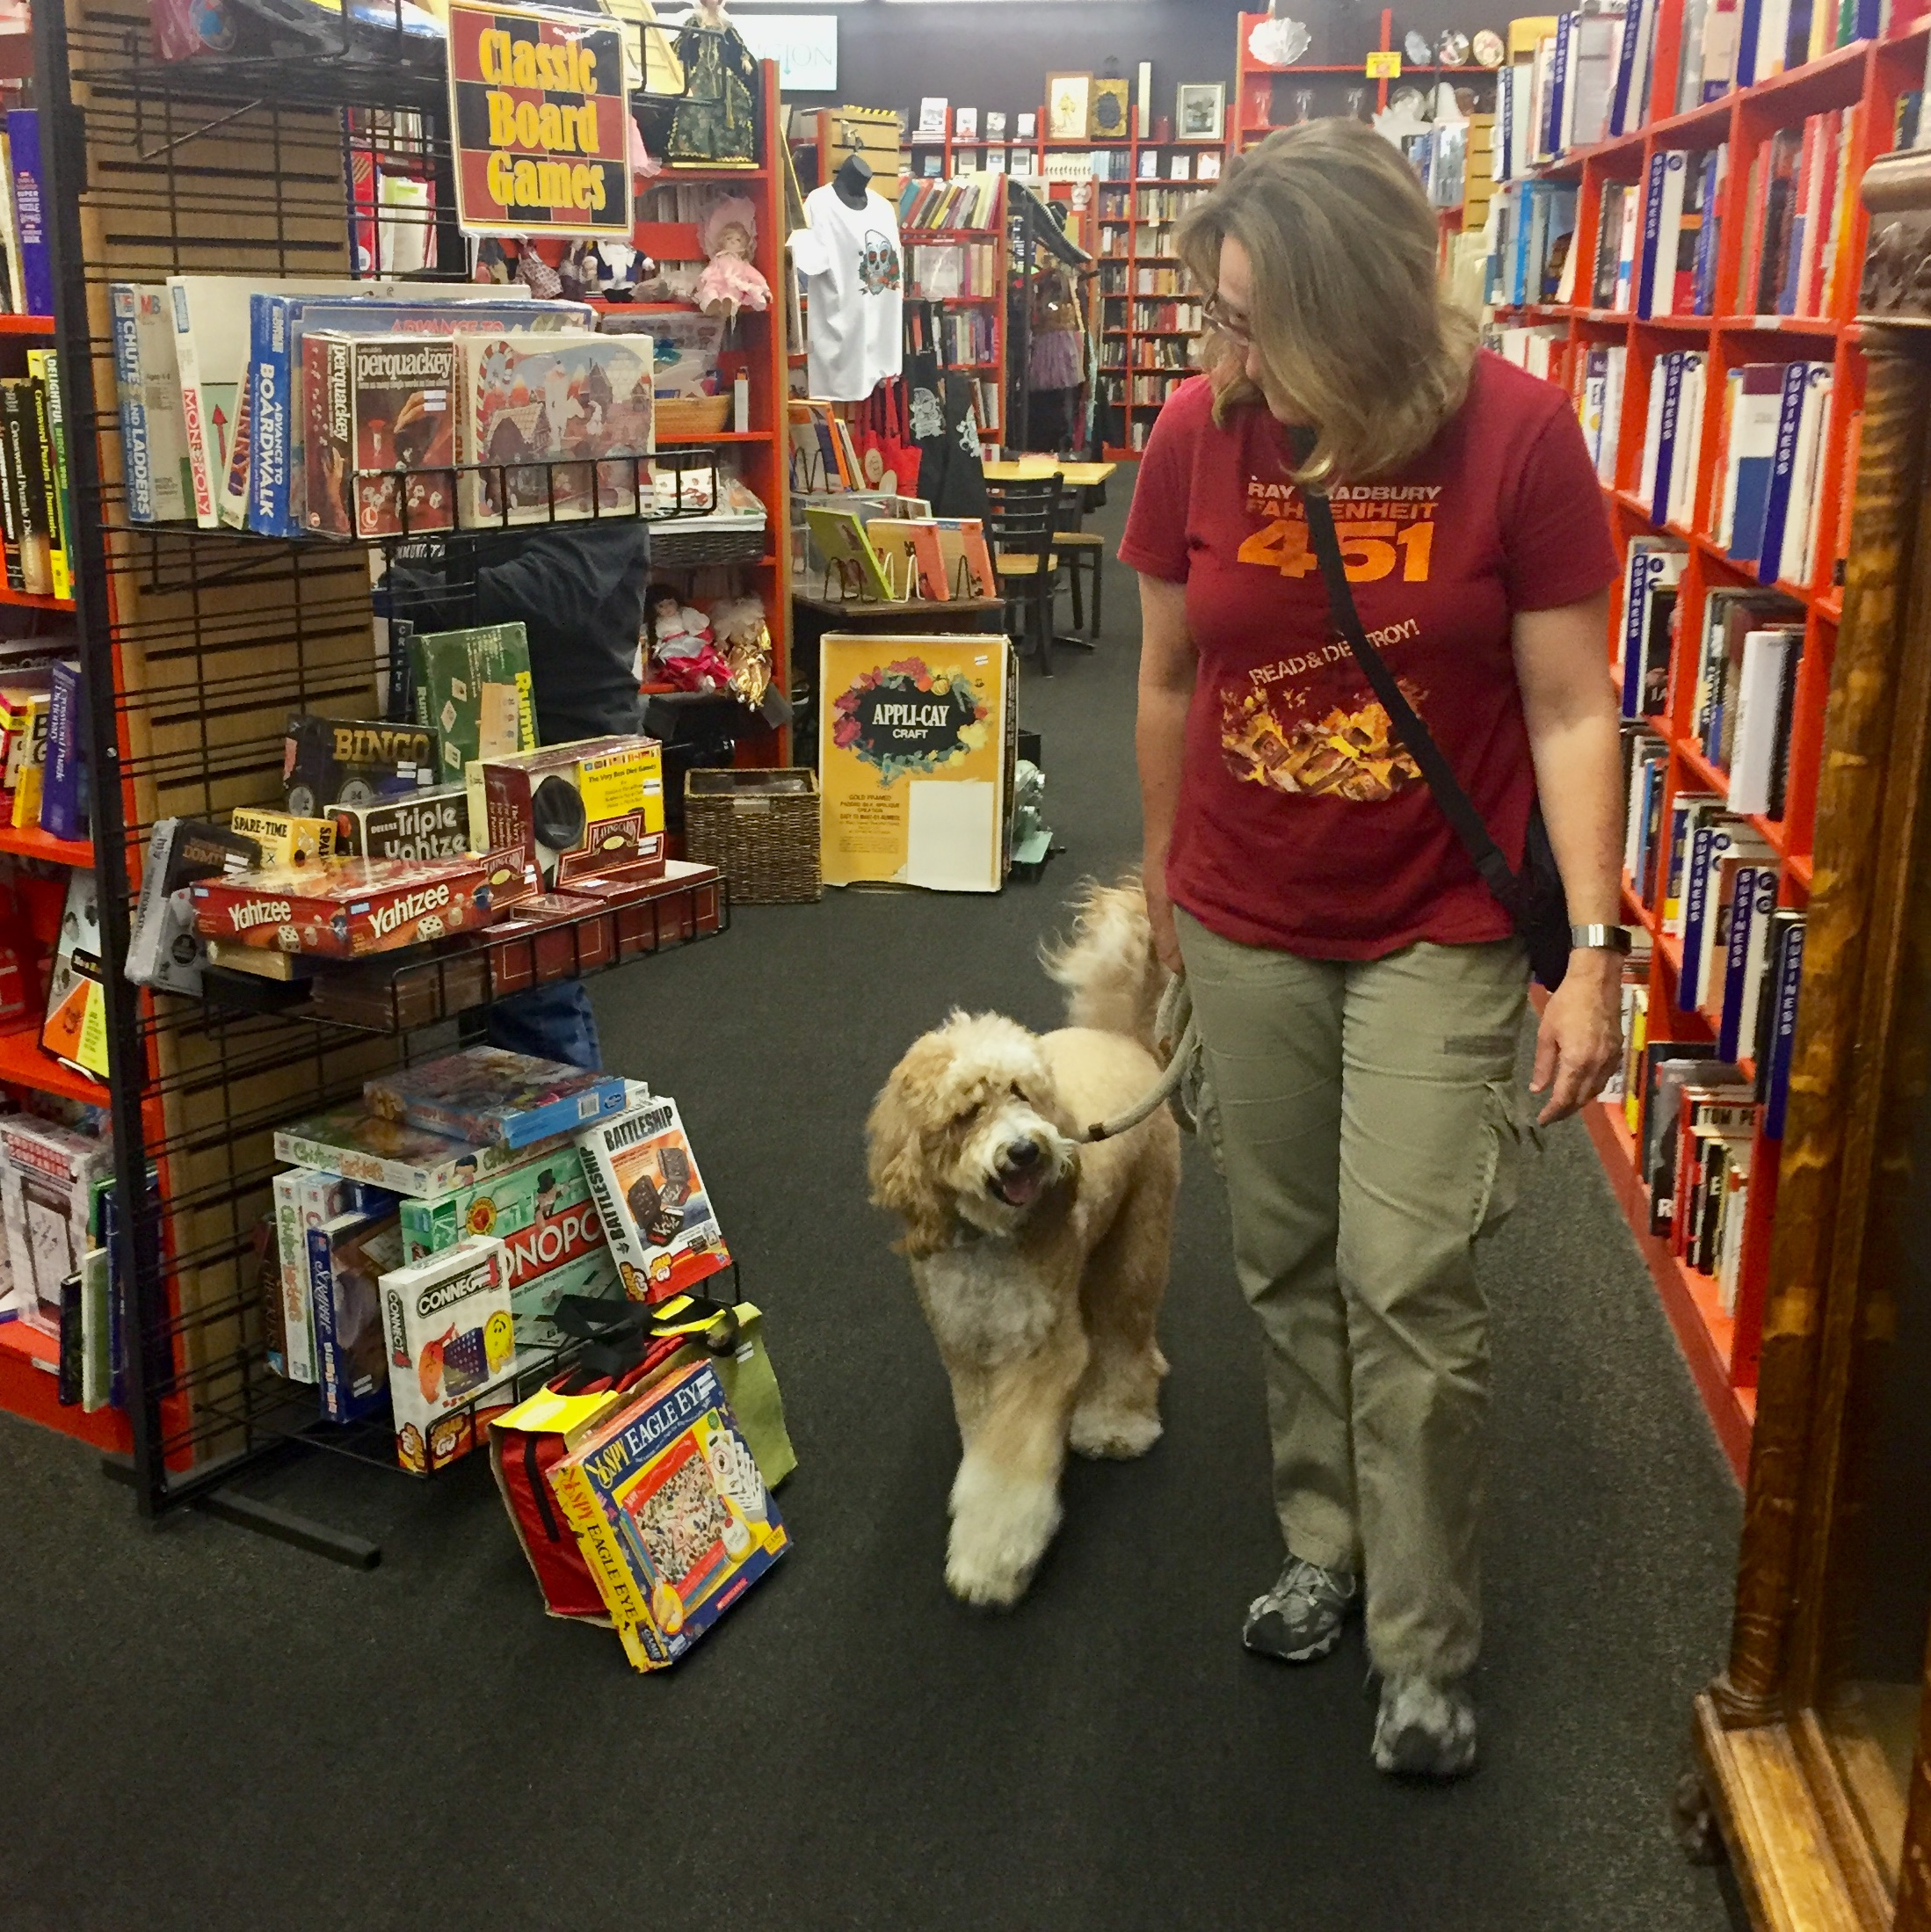 Once we were on the move, Bernie pays closer attention to me than all the old games and books at Bookmans Used Bookstore.